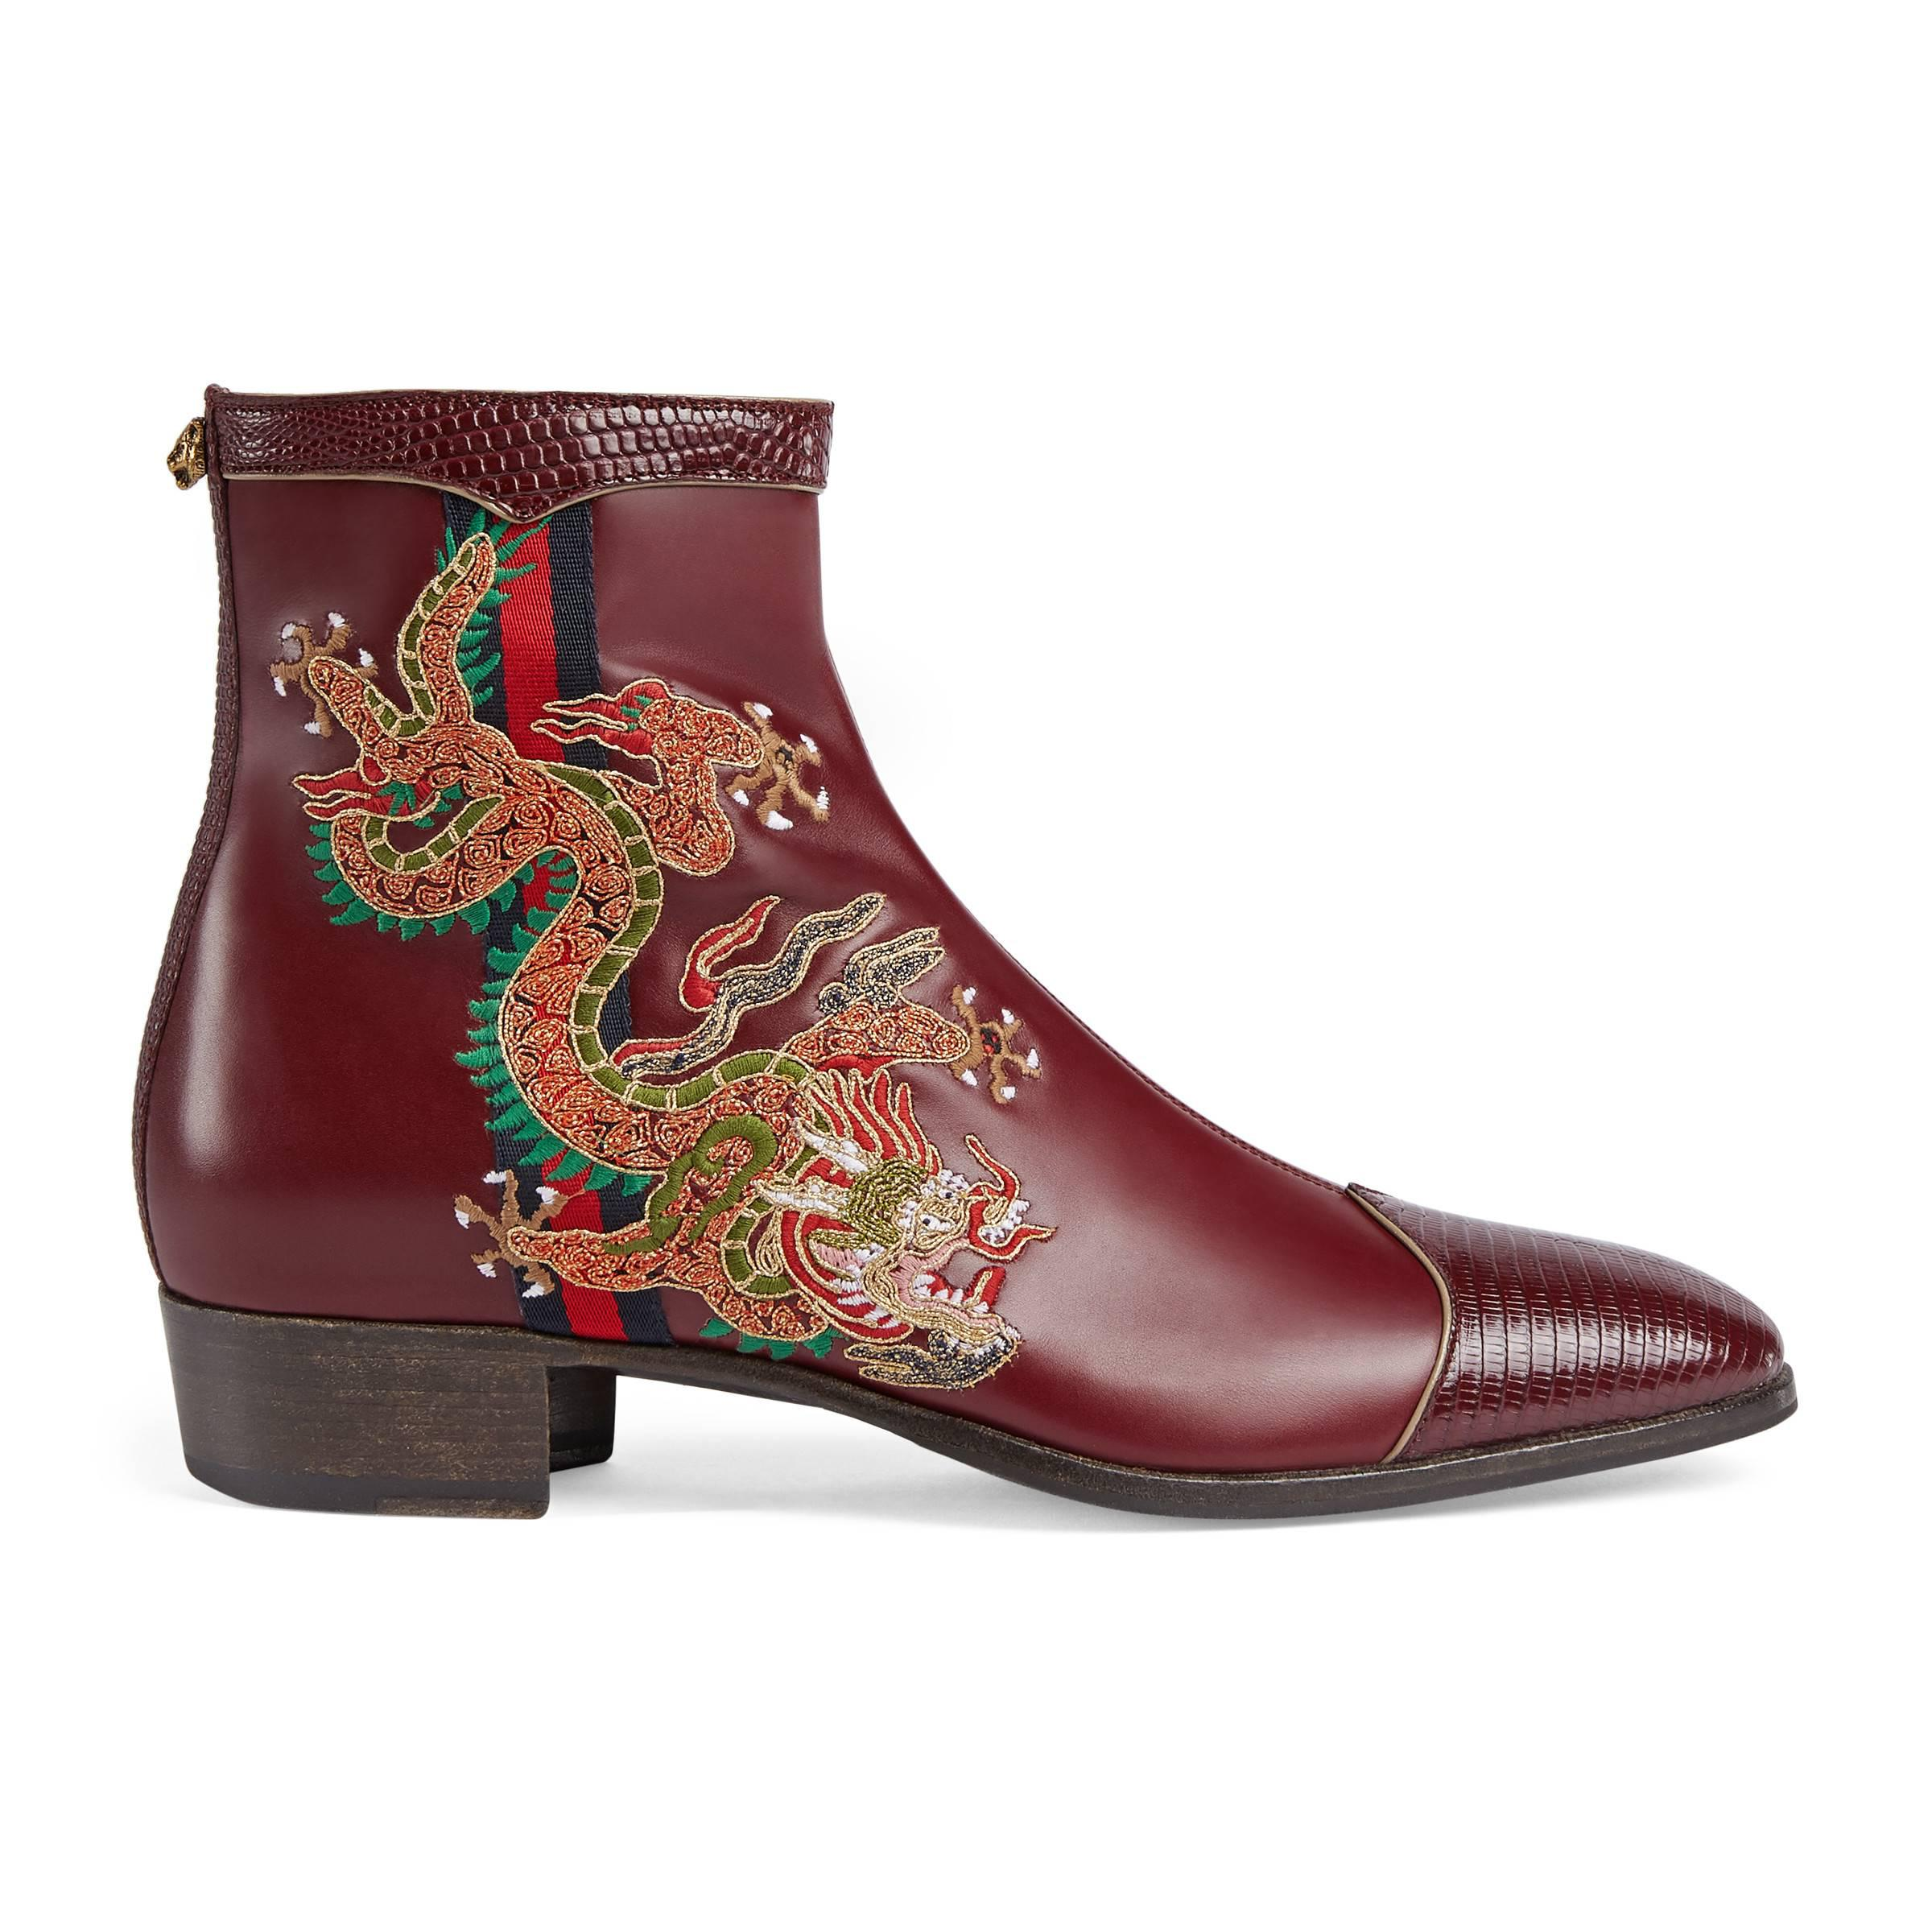 17fb8aed6 Gucci Leather Boot With Dragon in Brown for Men - Lyst